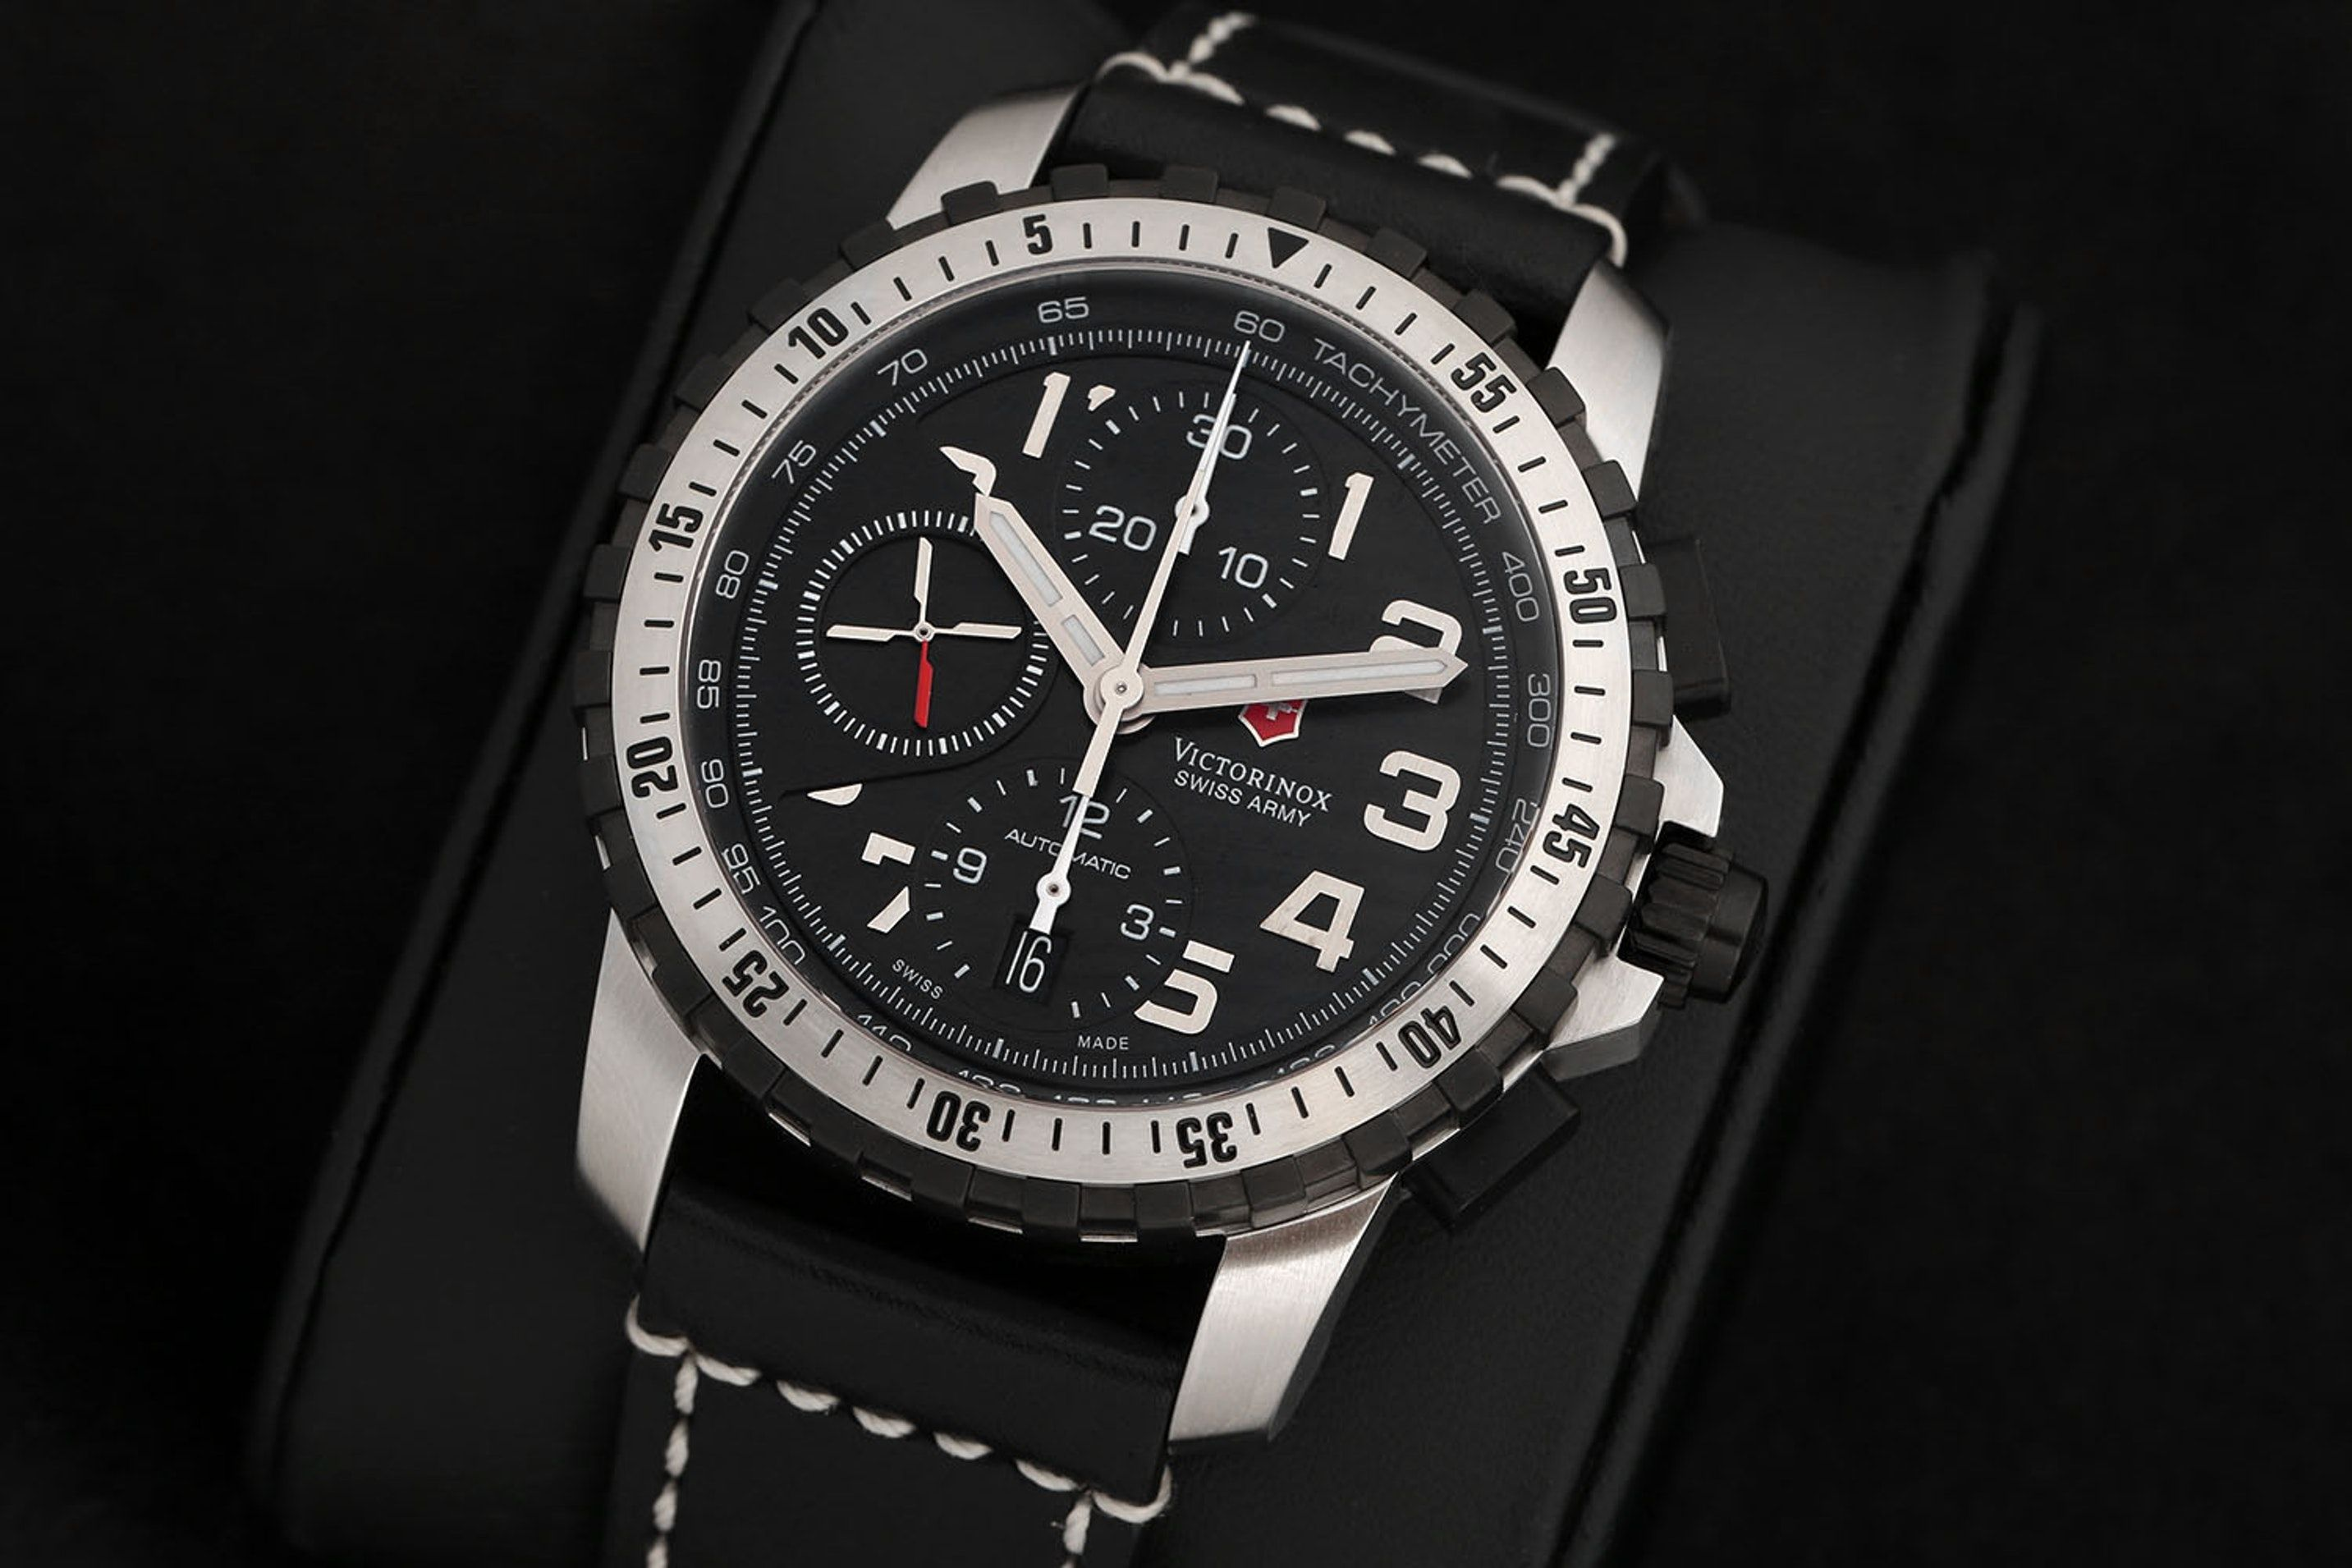 to watches watch black enlarge productdetail click compass back chrono fly timex iq strap leather